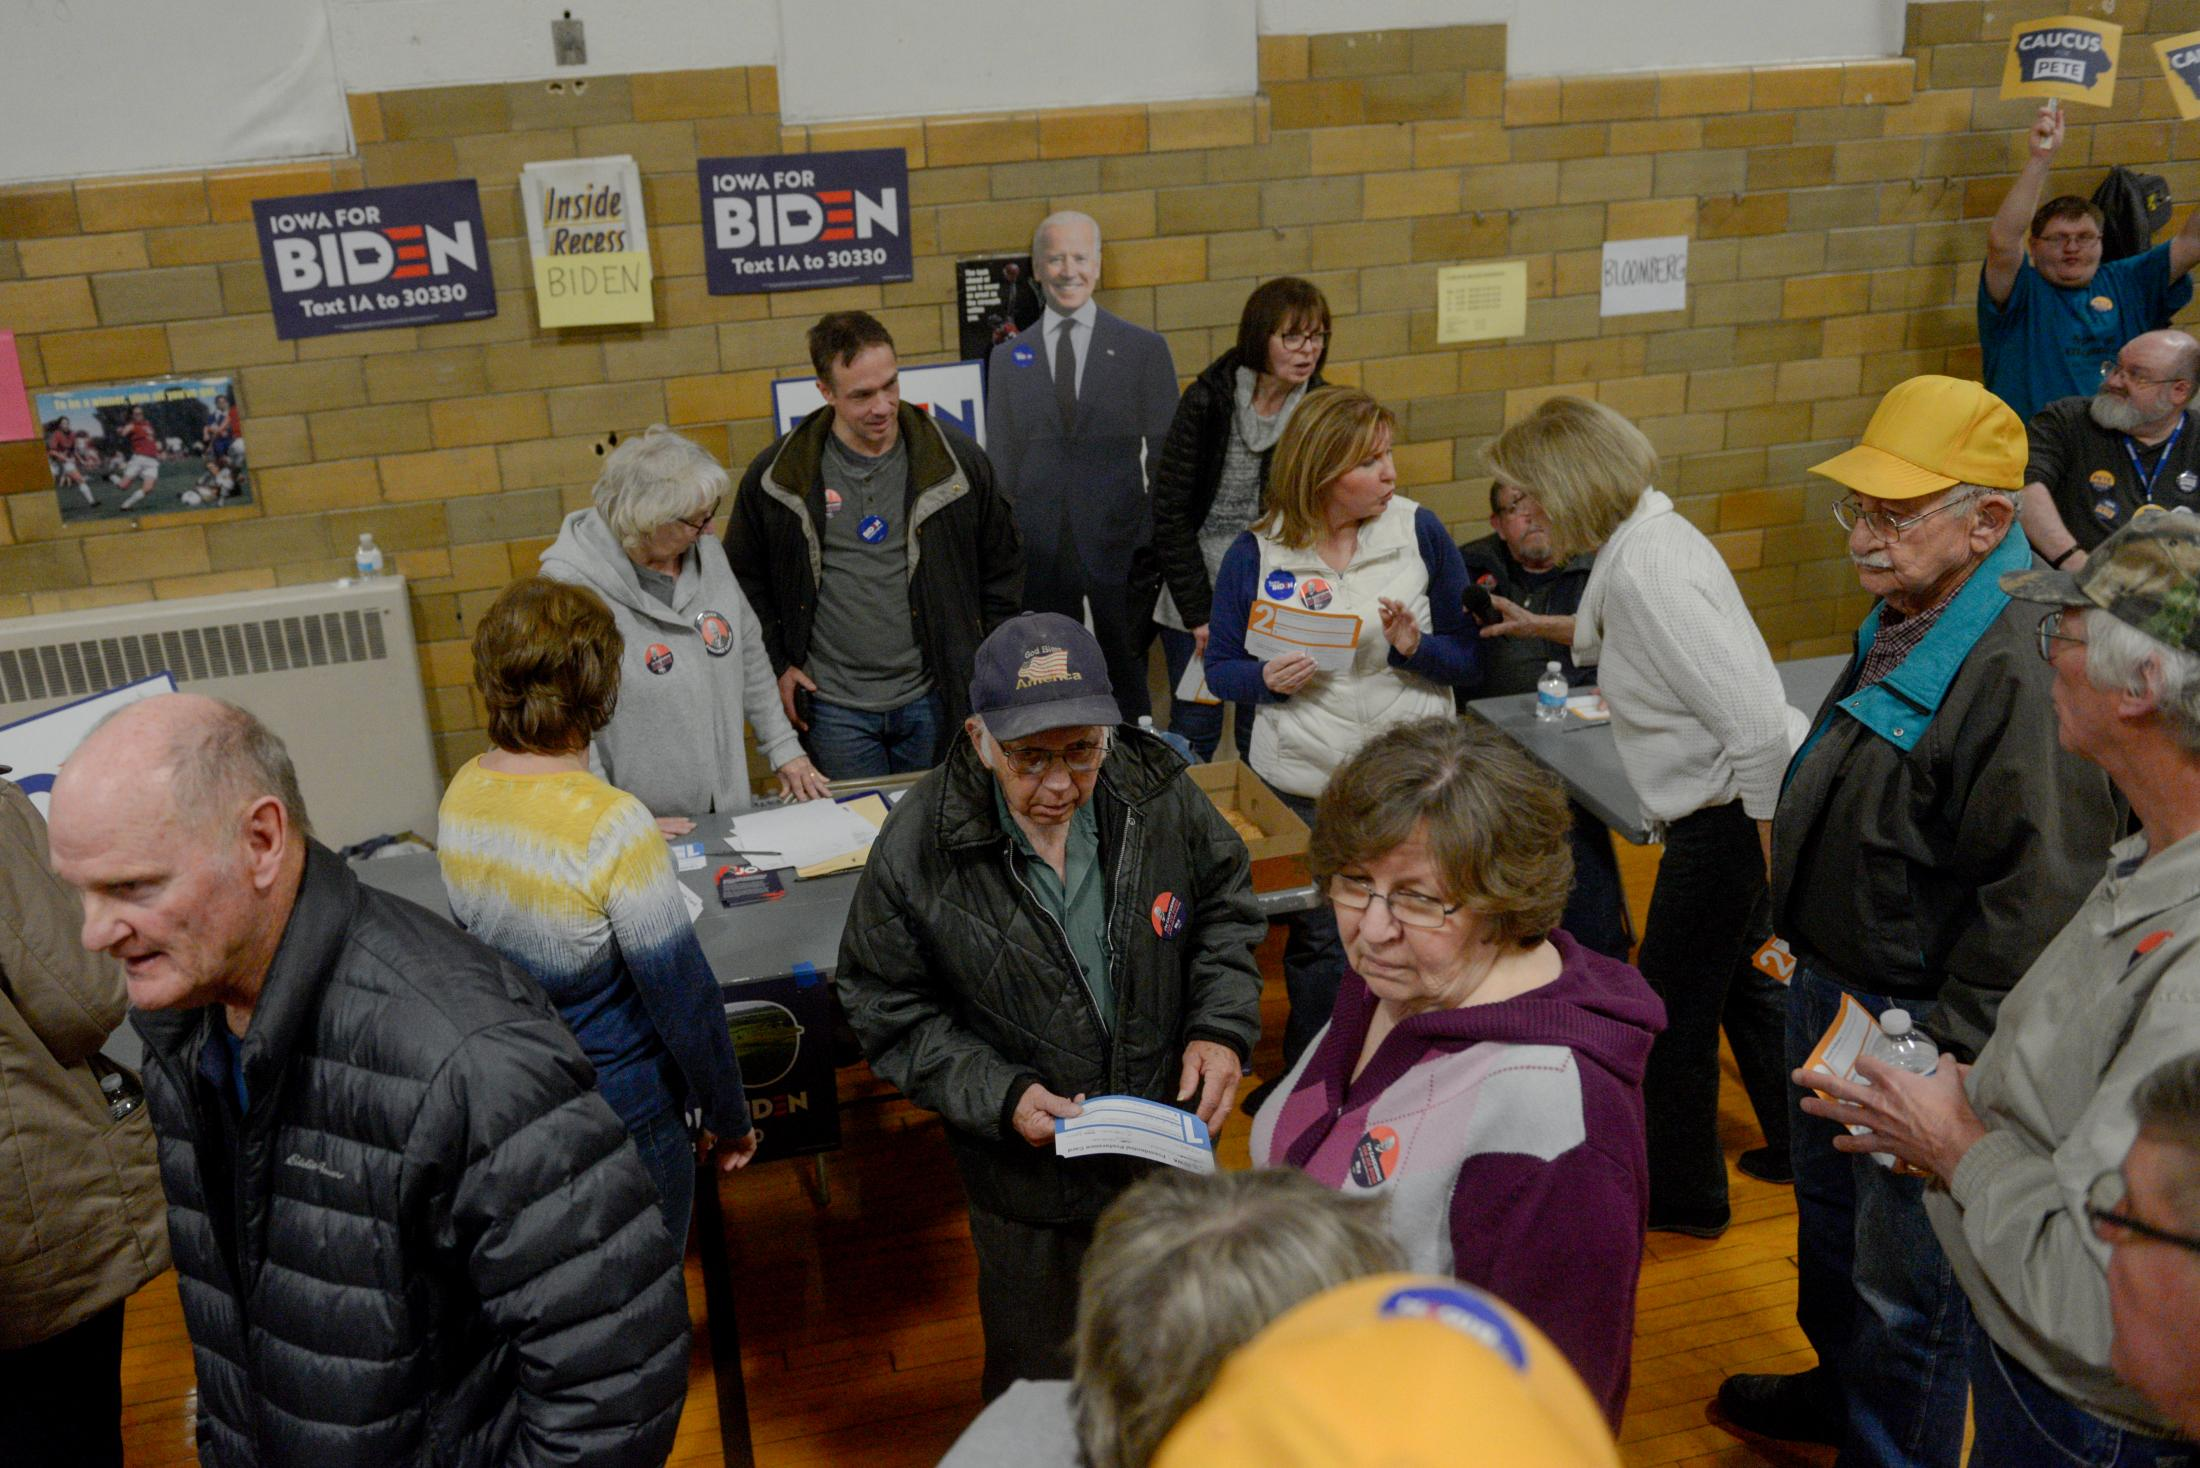 Supporters of Joe Biden stand around their table at Richardson Elementary School for the Fifth Precinct caucus on Monday, February 3, 2020, in Fort Madison, Iowa. The Biden campaign received three delegates from the district.